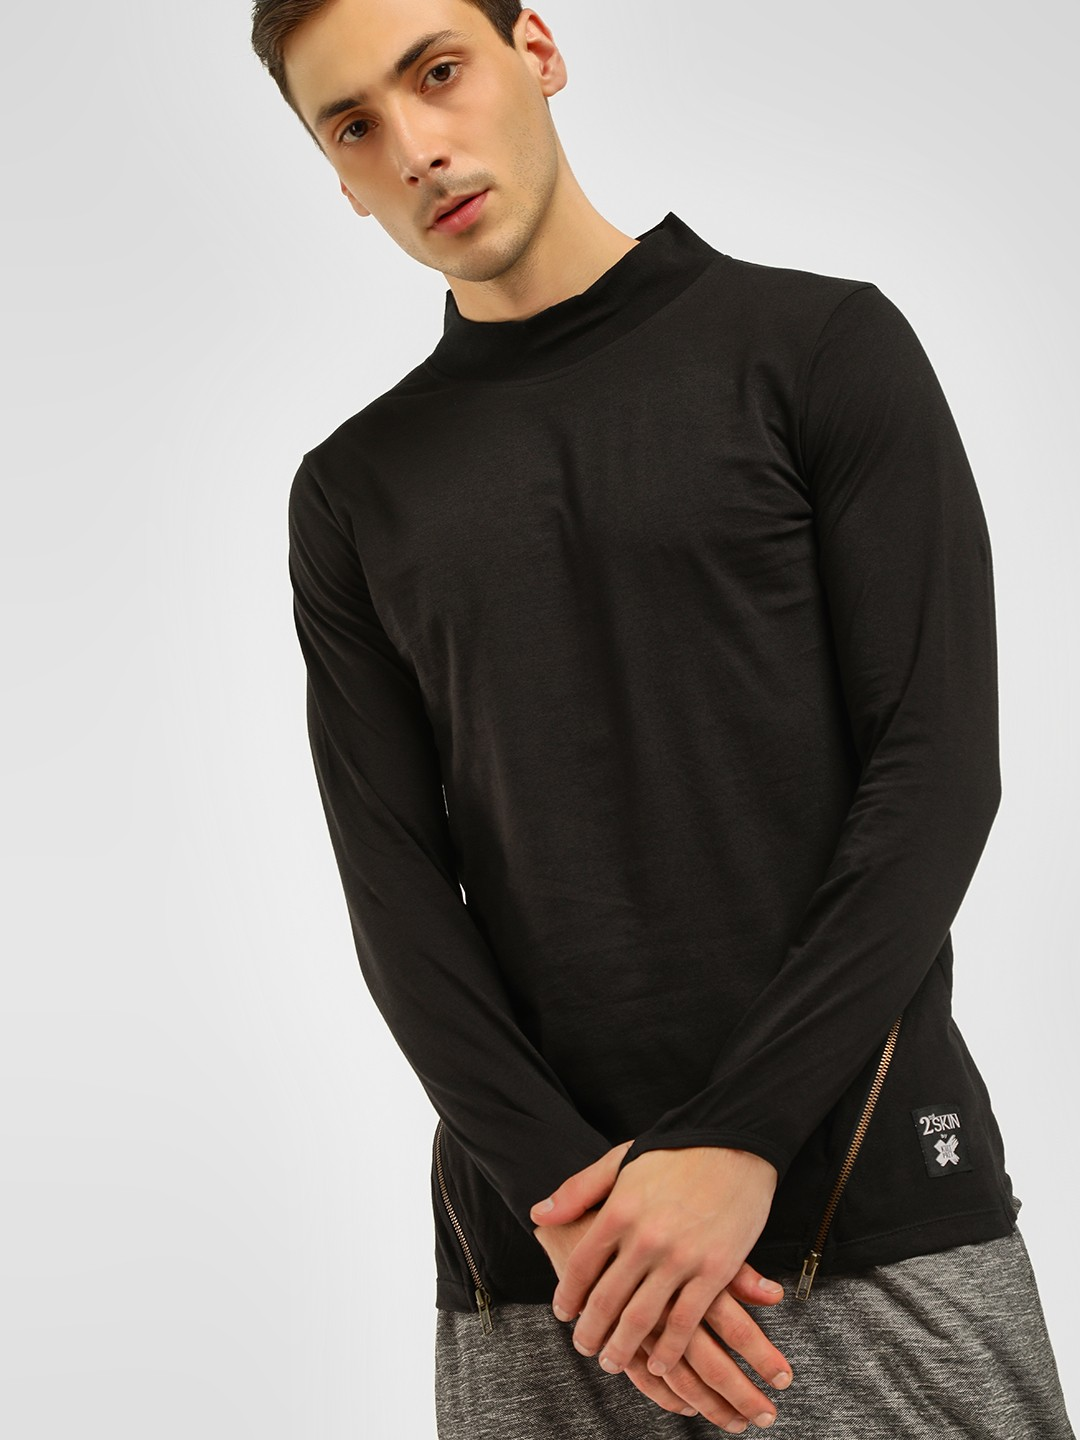 Kultprit Black Turtleneck Thumbhole Slim T-Shirt 1